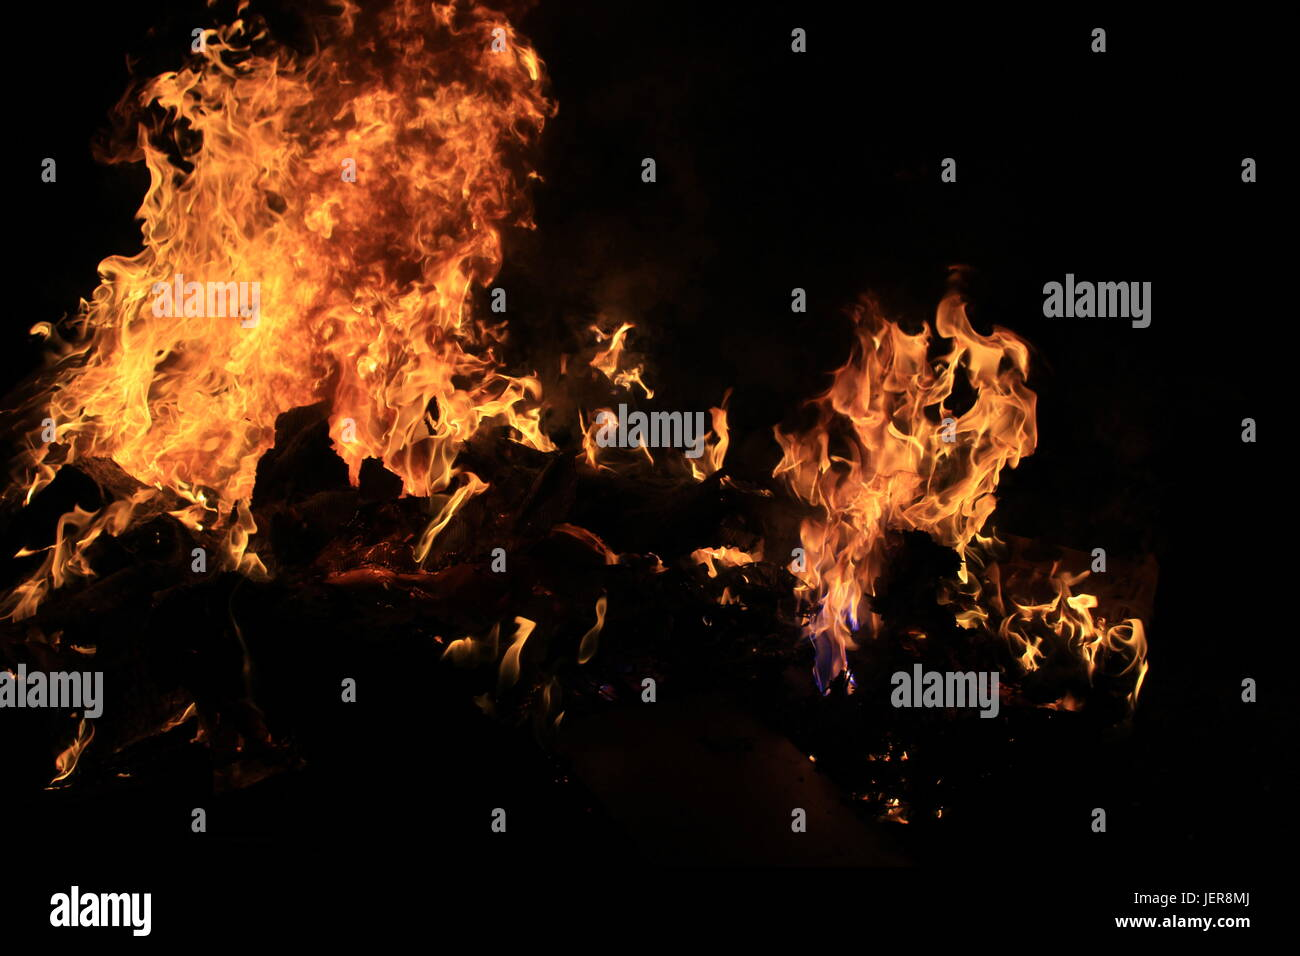 Incredible clear quality photo of an angry fire. - Stock Image